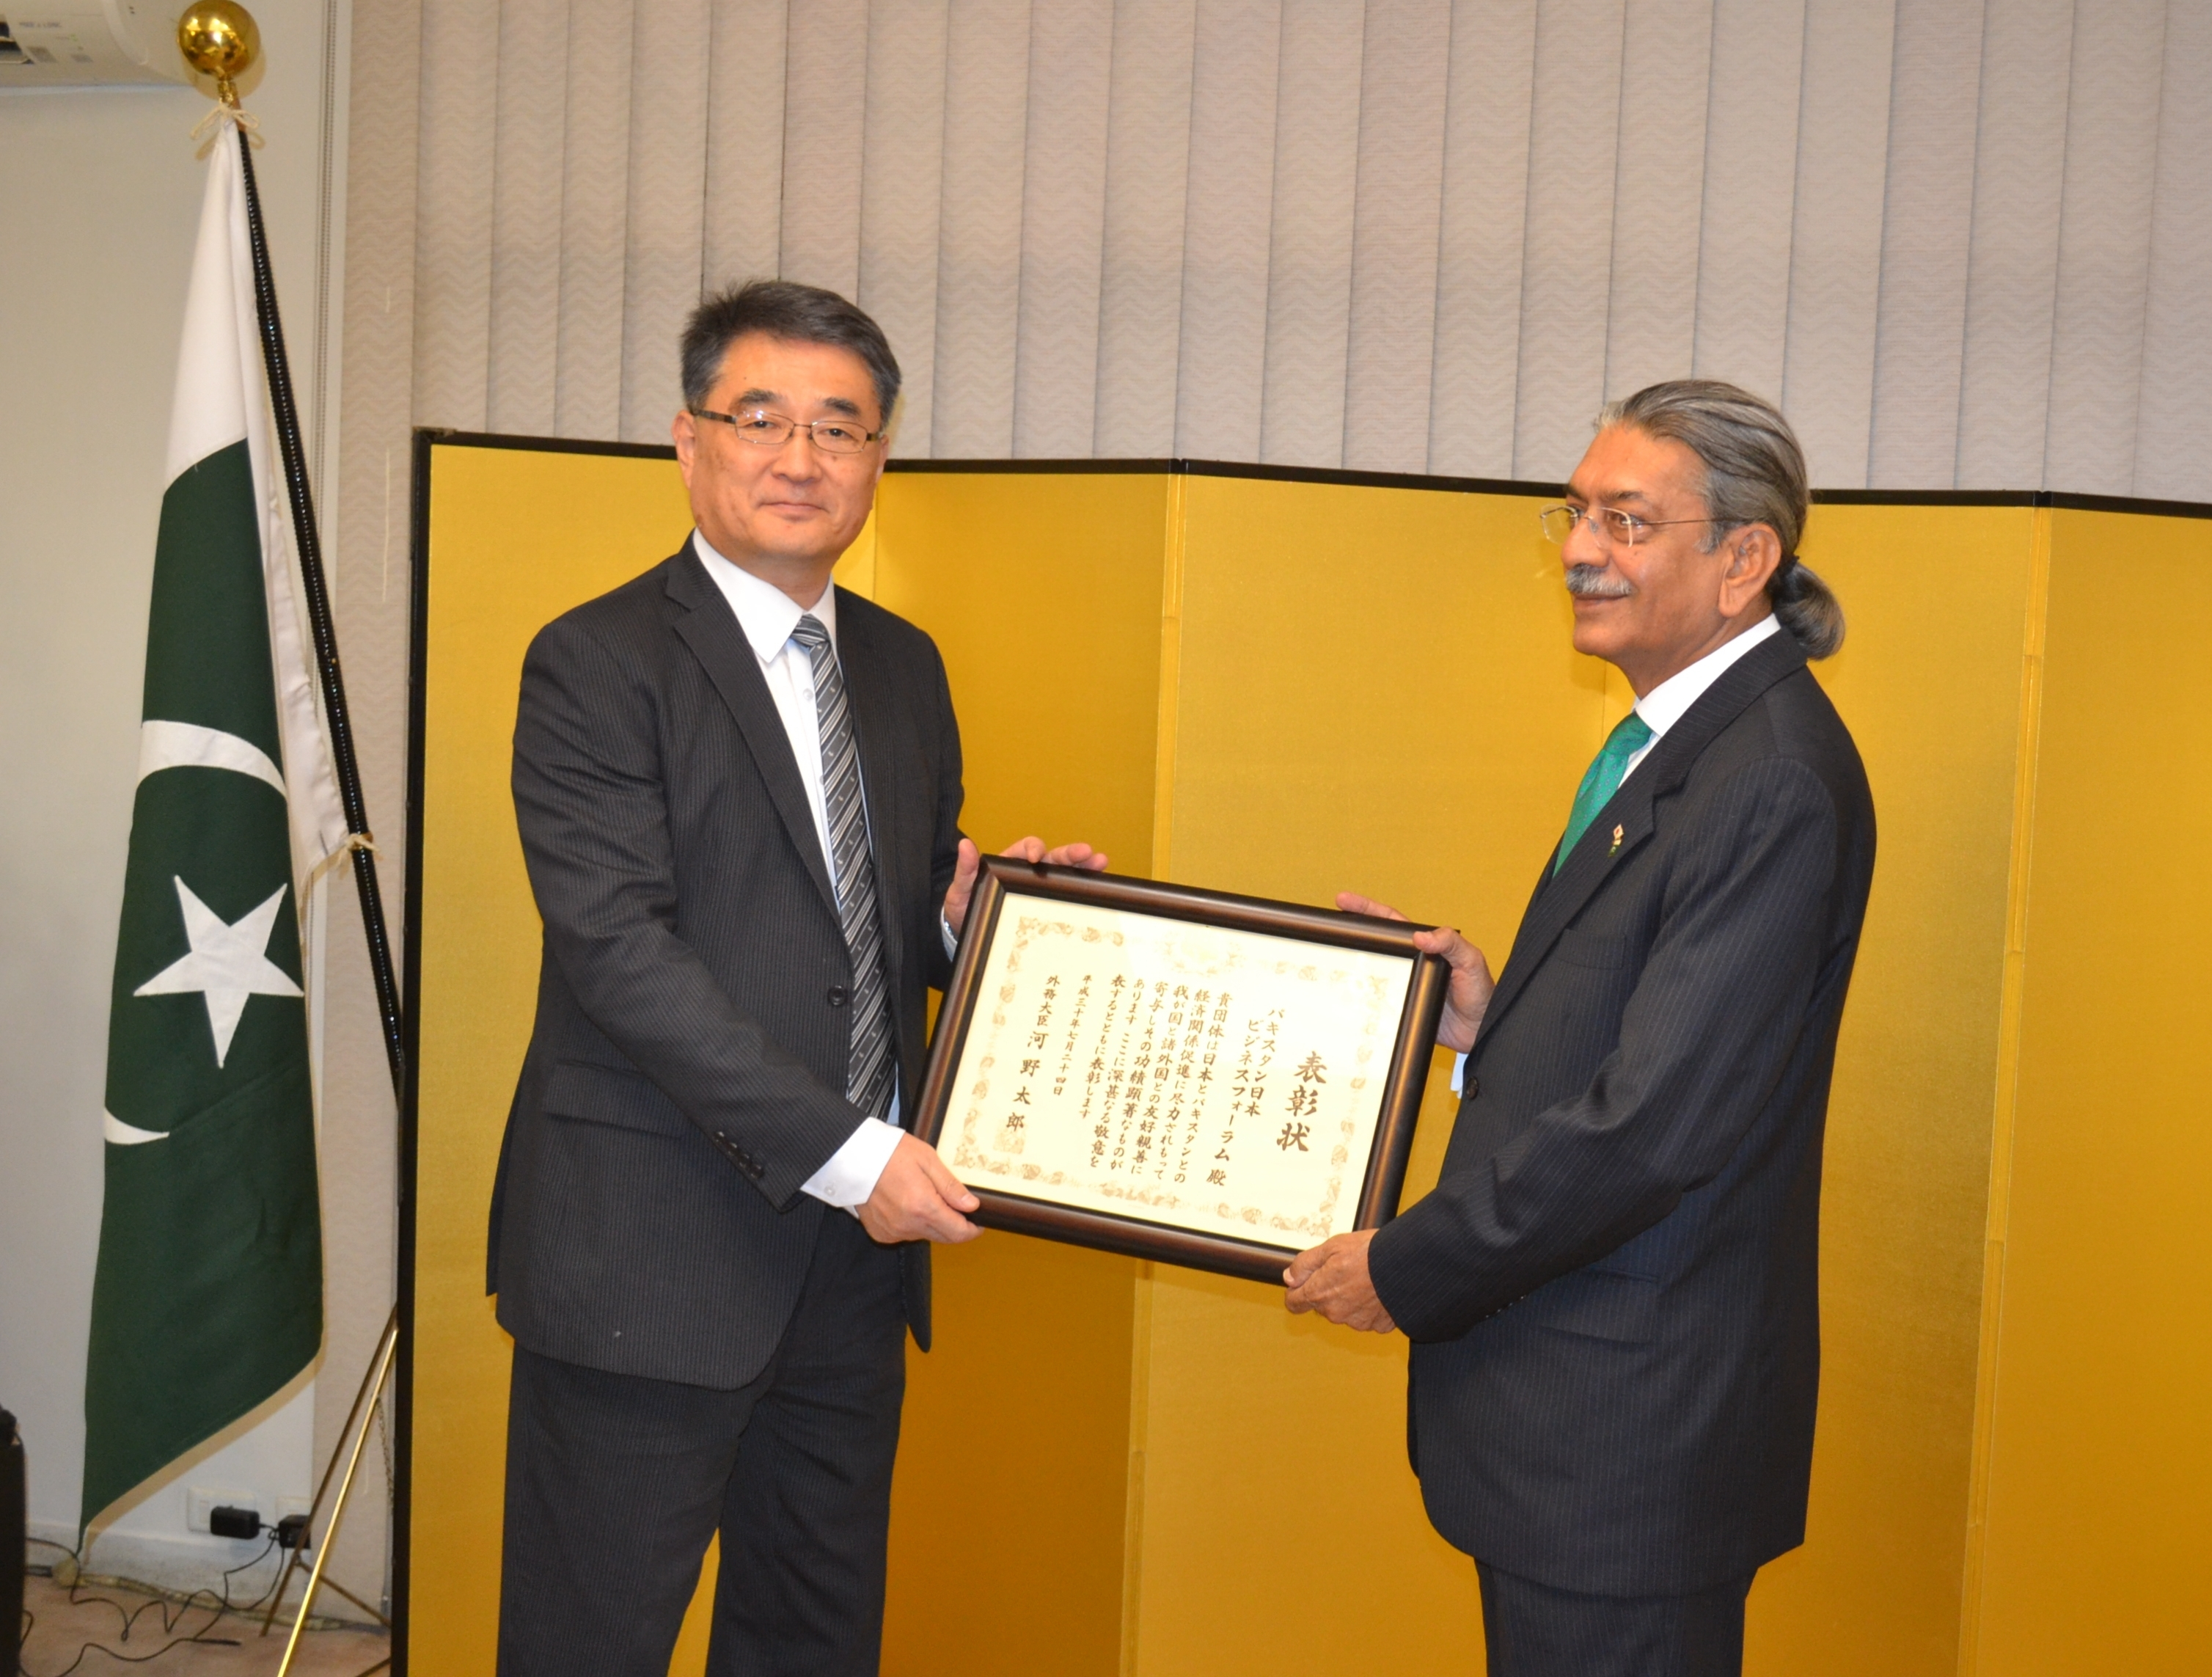 On September 4, 2018, The Commendation Award Ceremony was held this evening by Consul General of Japan in Karachi, H.E. Mr. Toshikazu Isomura. PJBF received the Commendations in recognition of its significant contributions to the promotion of economic relations between Japan and Pakistan<br />